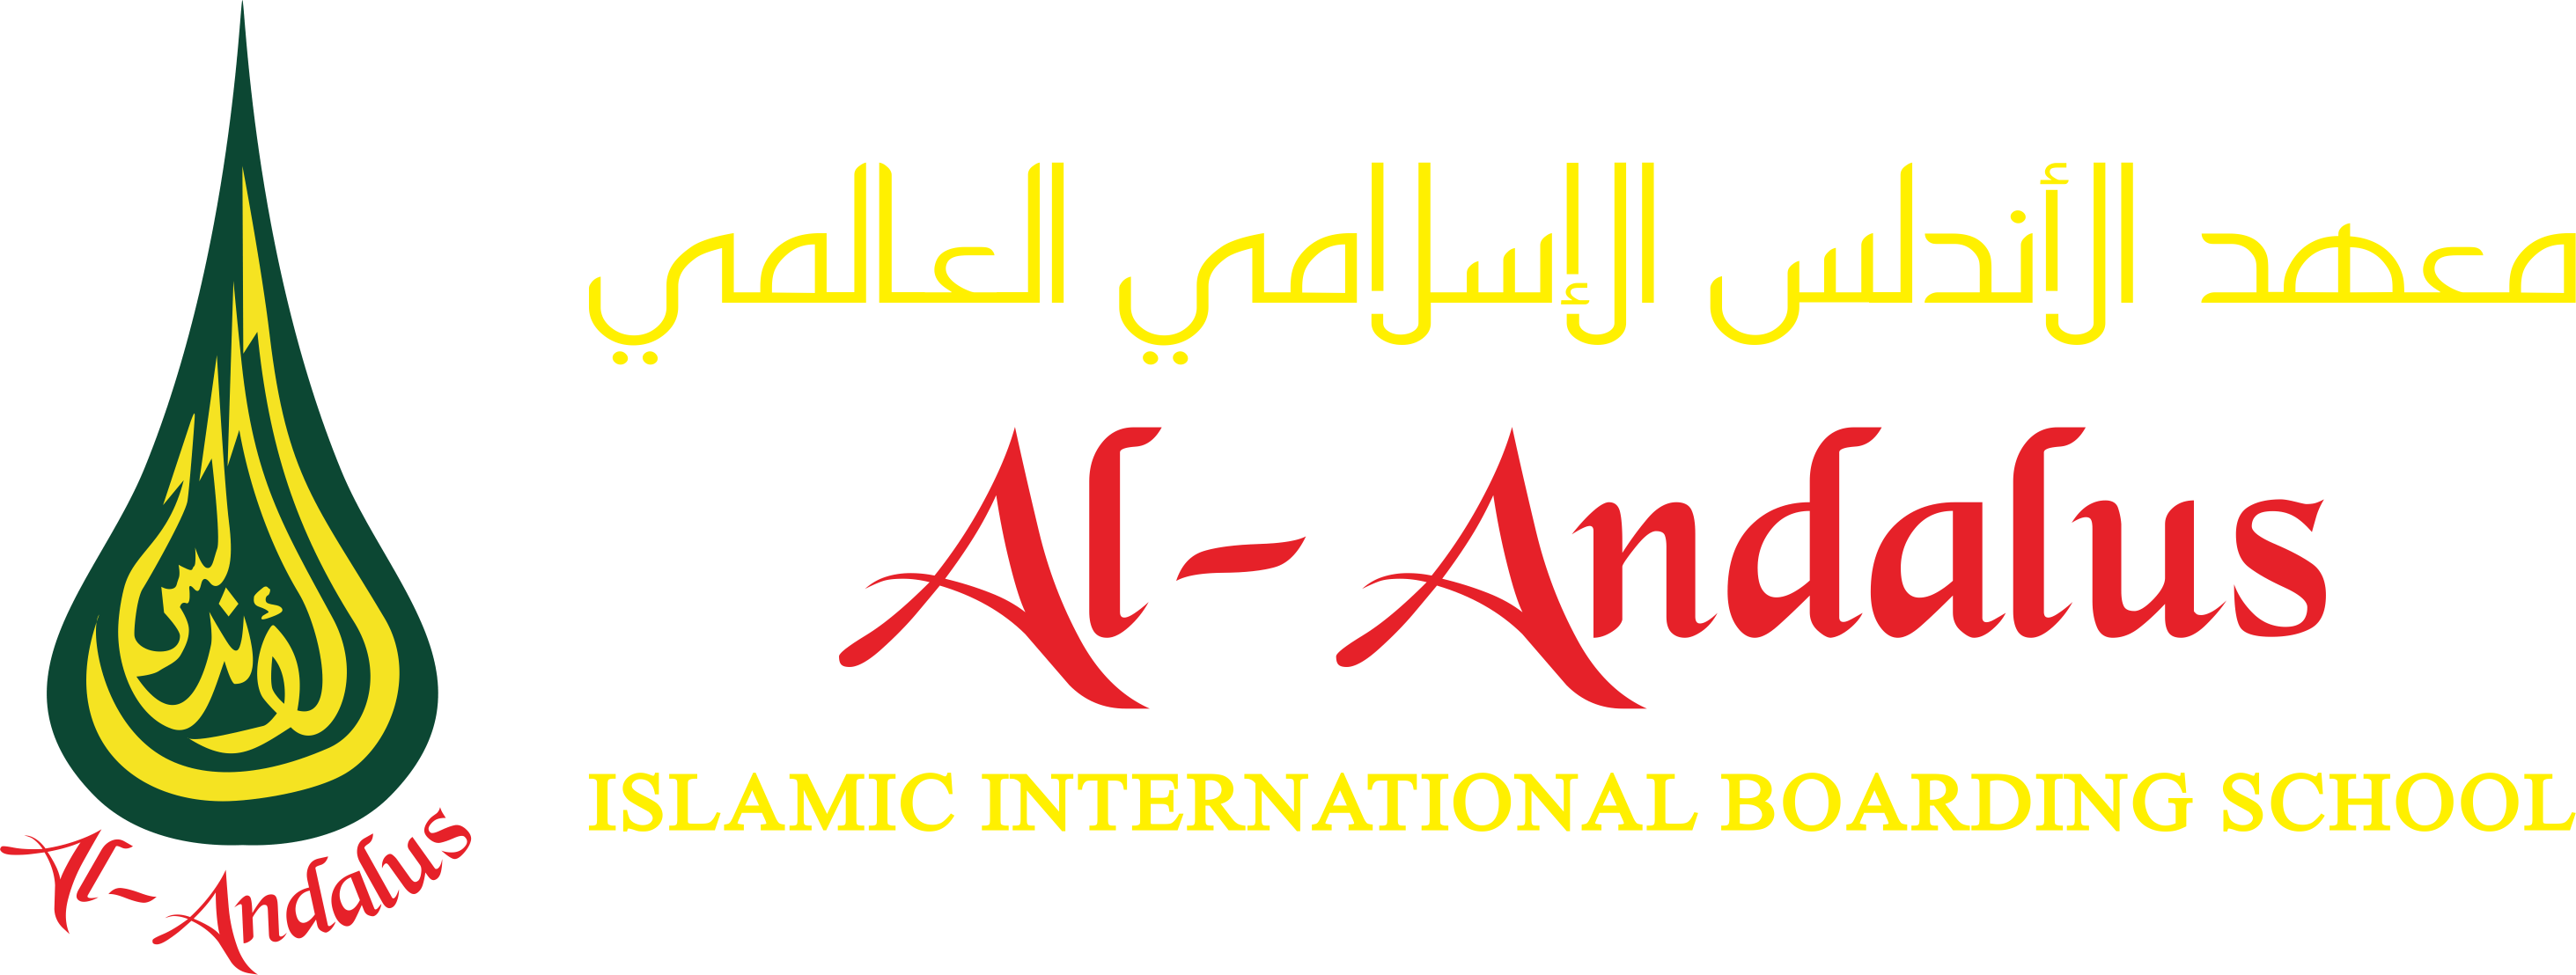 Al-Andalus Islamic International Boarding School